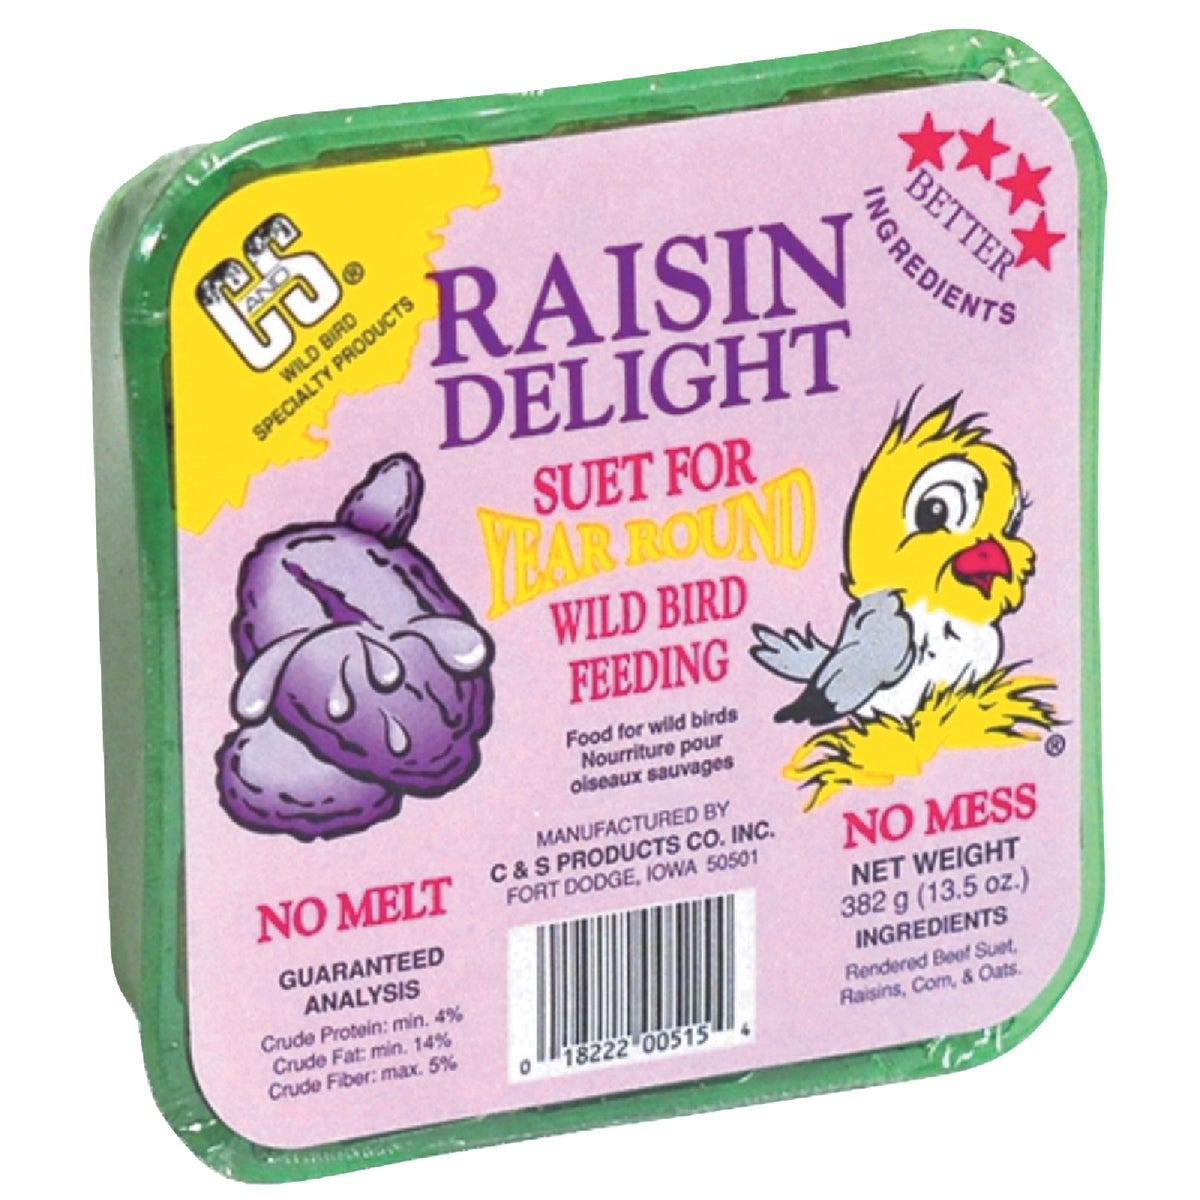 RAISIN DELIGHT SUET - 12515 by C & S Products Inc